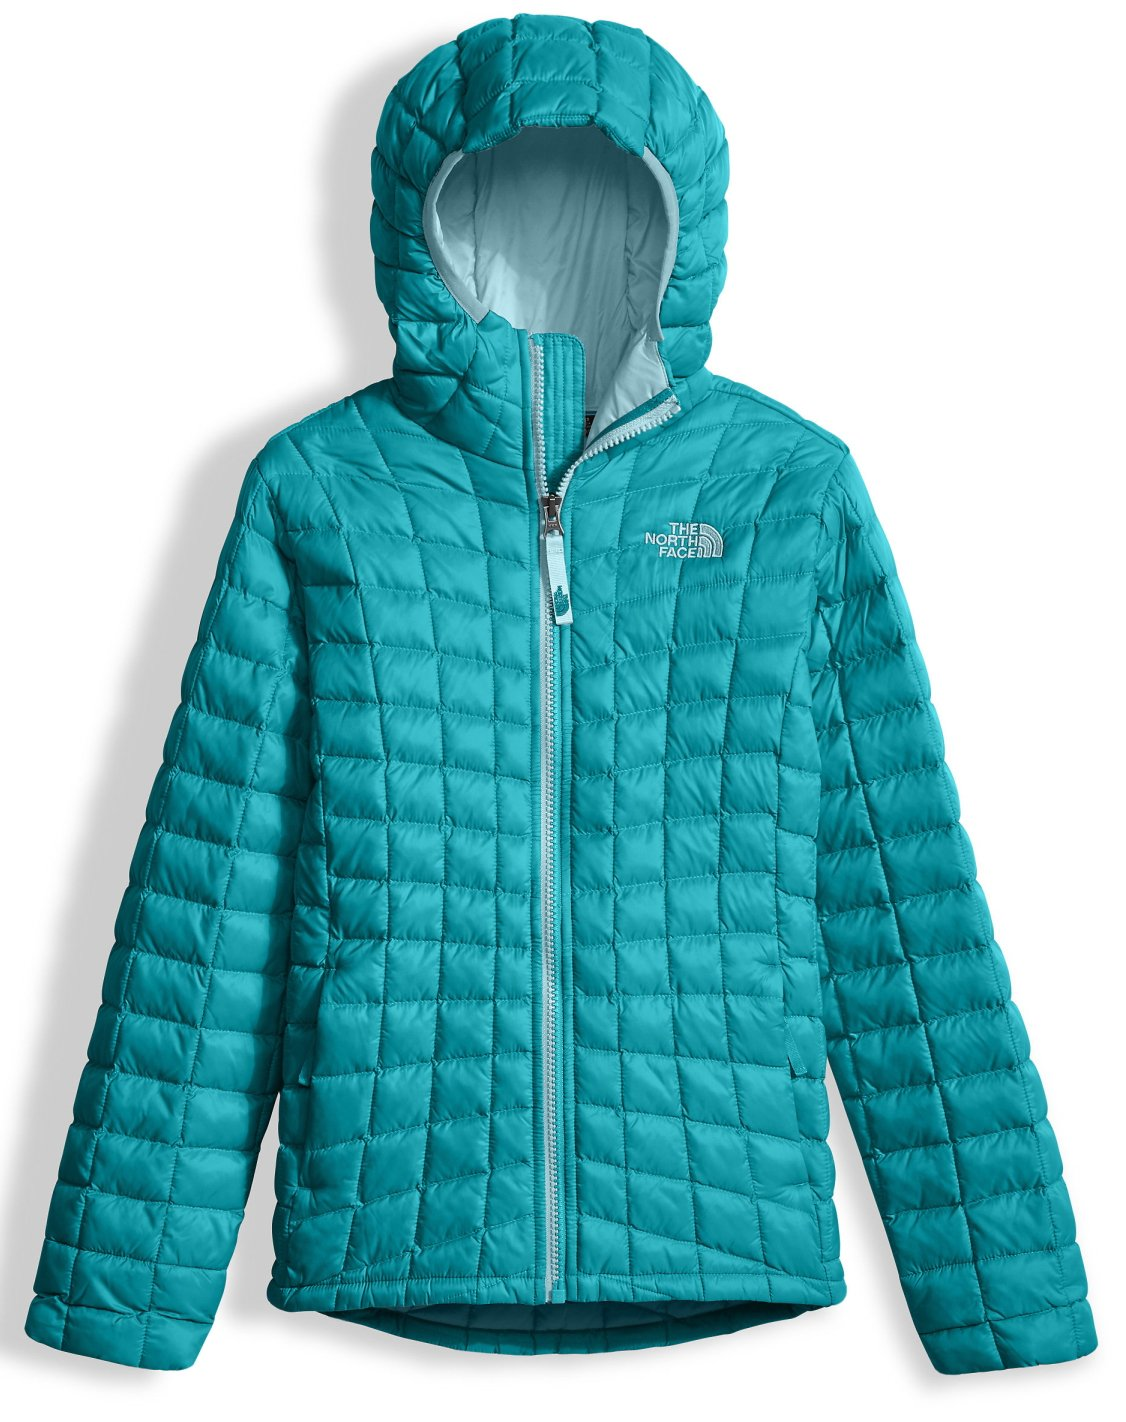 THE NORTH FACE Girls' Thermoball Hoodie NOS67|#The North Face